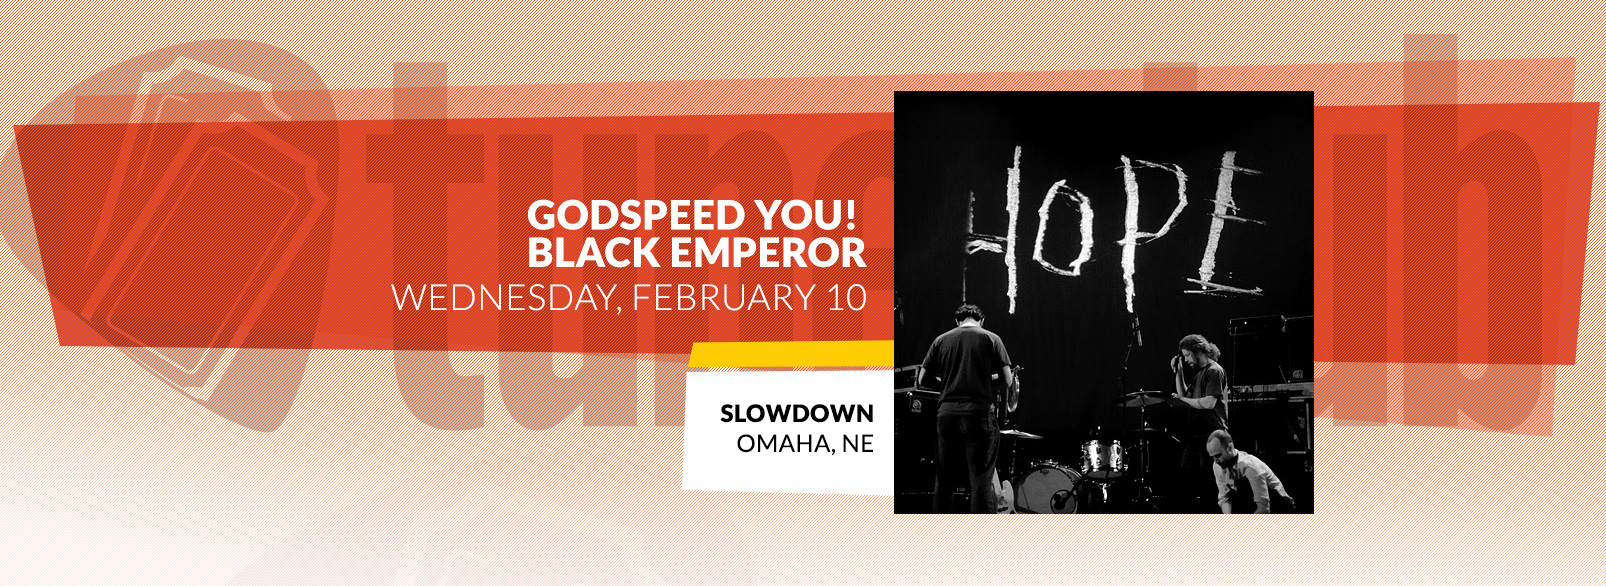 Godspeed You! Black Emperor @ Slowdown